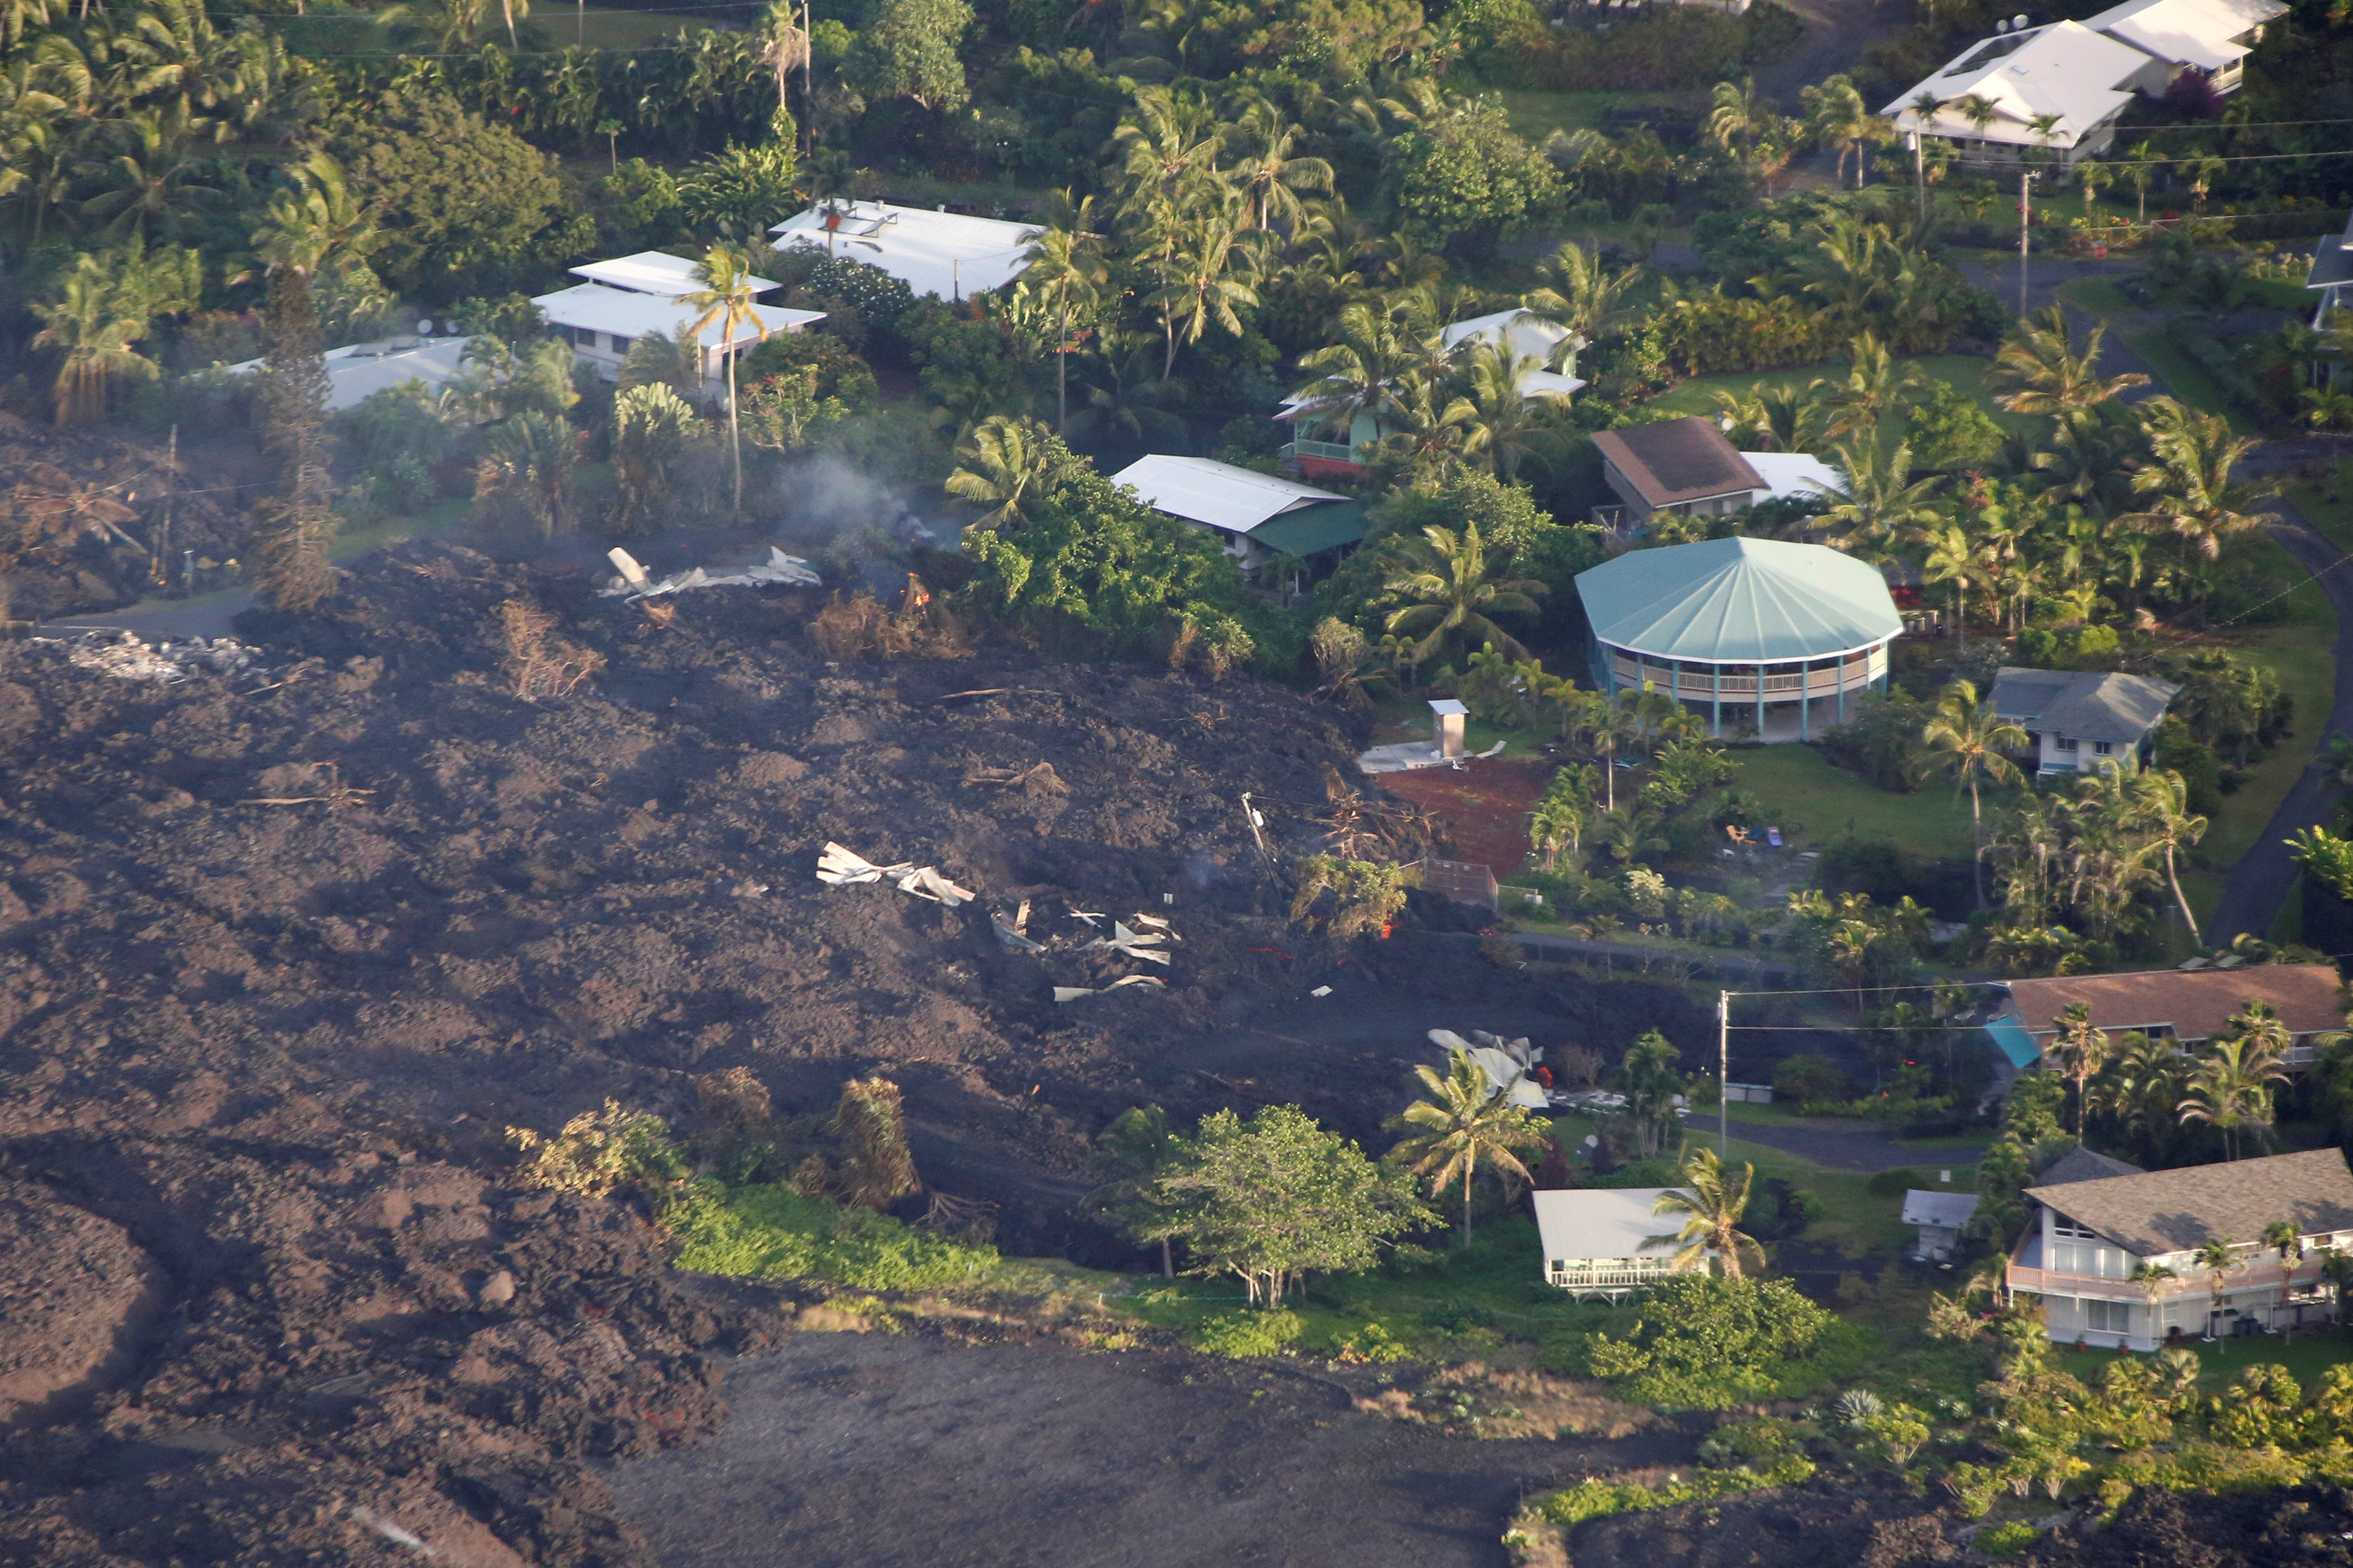 Lava destroys homes in the Kapoho area, east of Pahoa, during ongoing eruptions of the Kilauea Volcano in Hawaii, U.S., June 5, 2018. REUTERS/Terray Sylvester